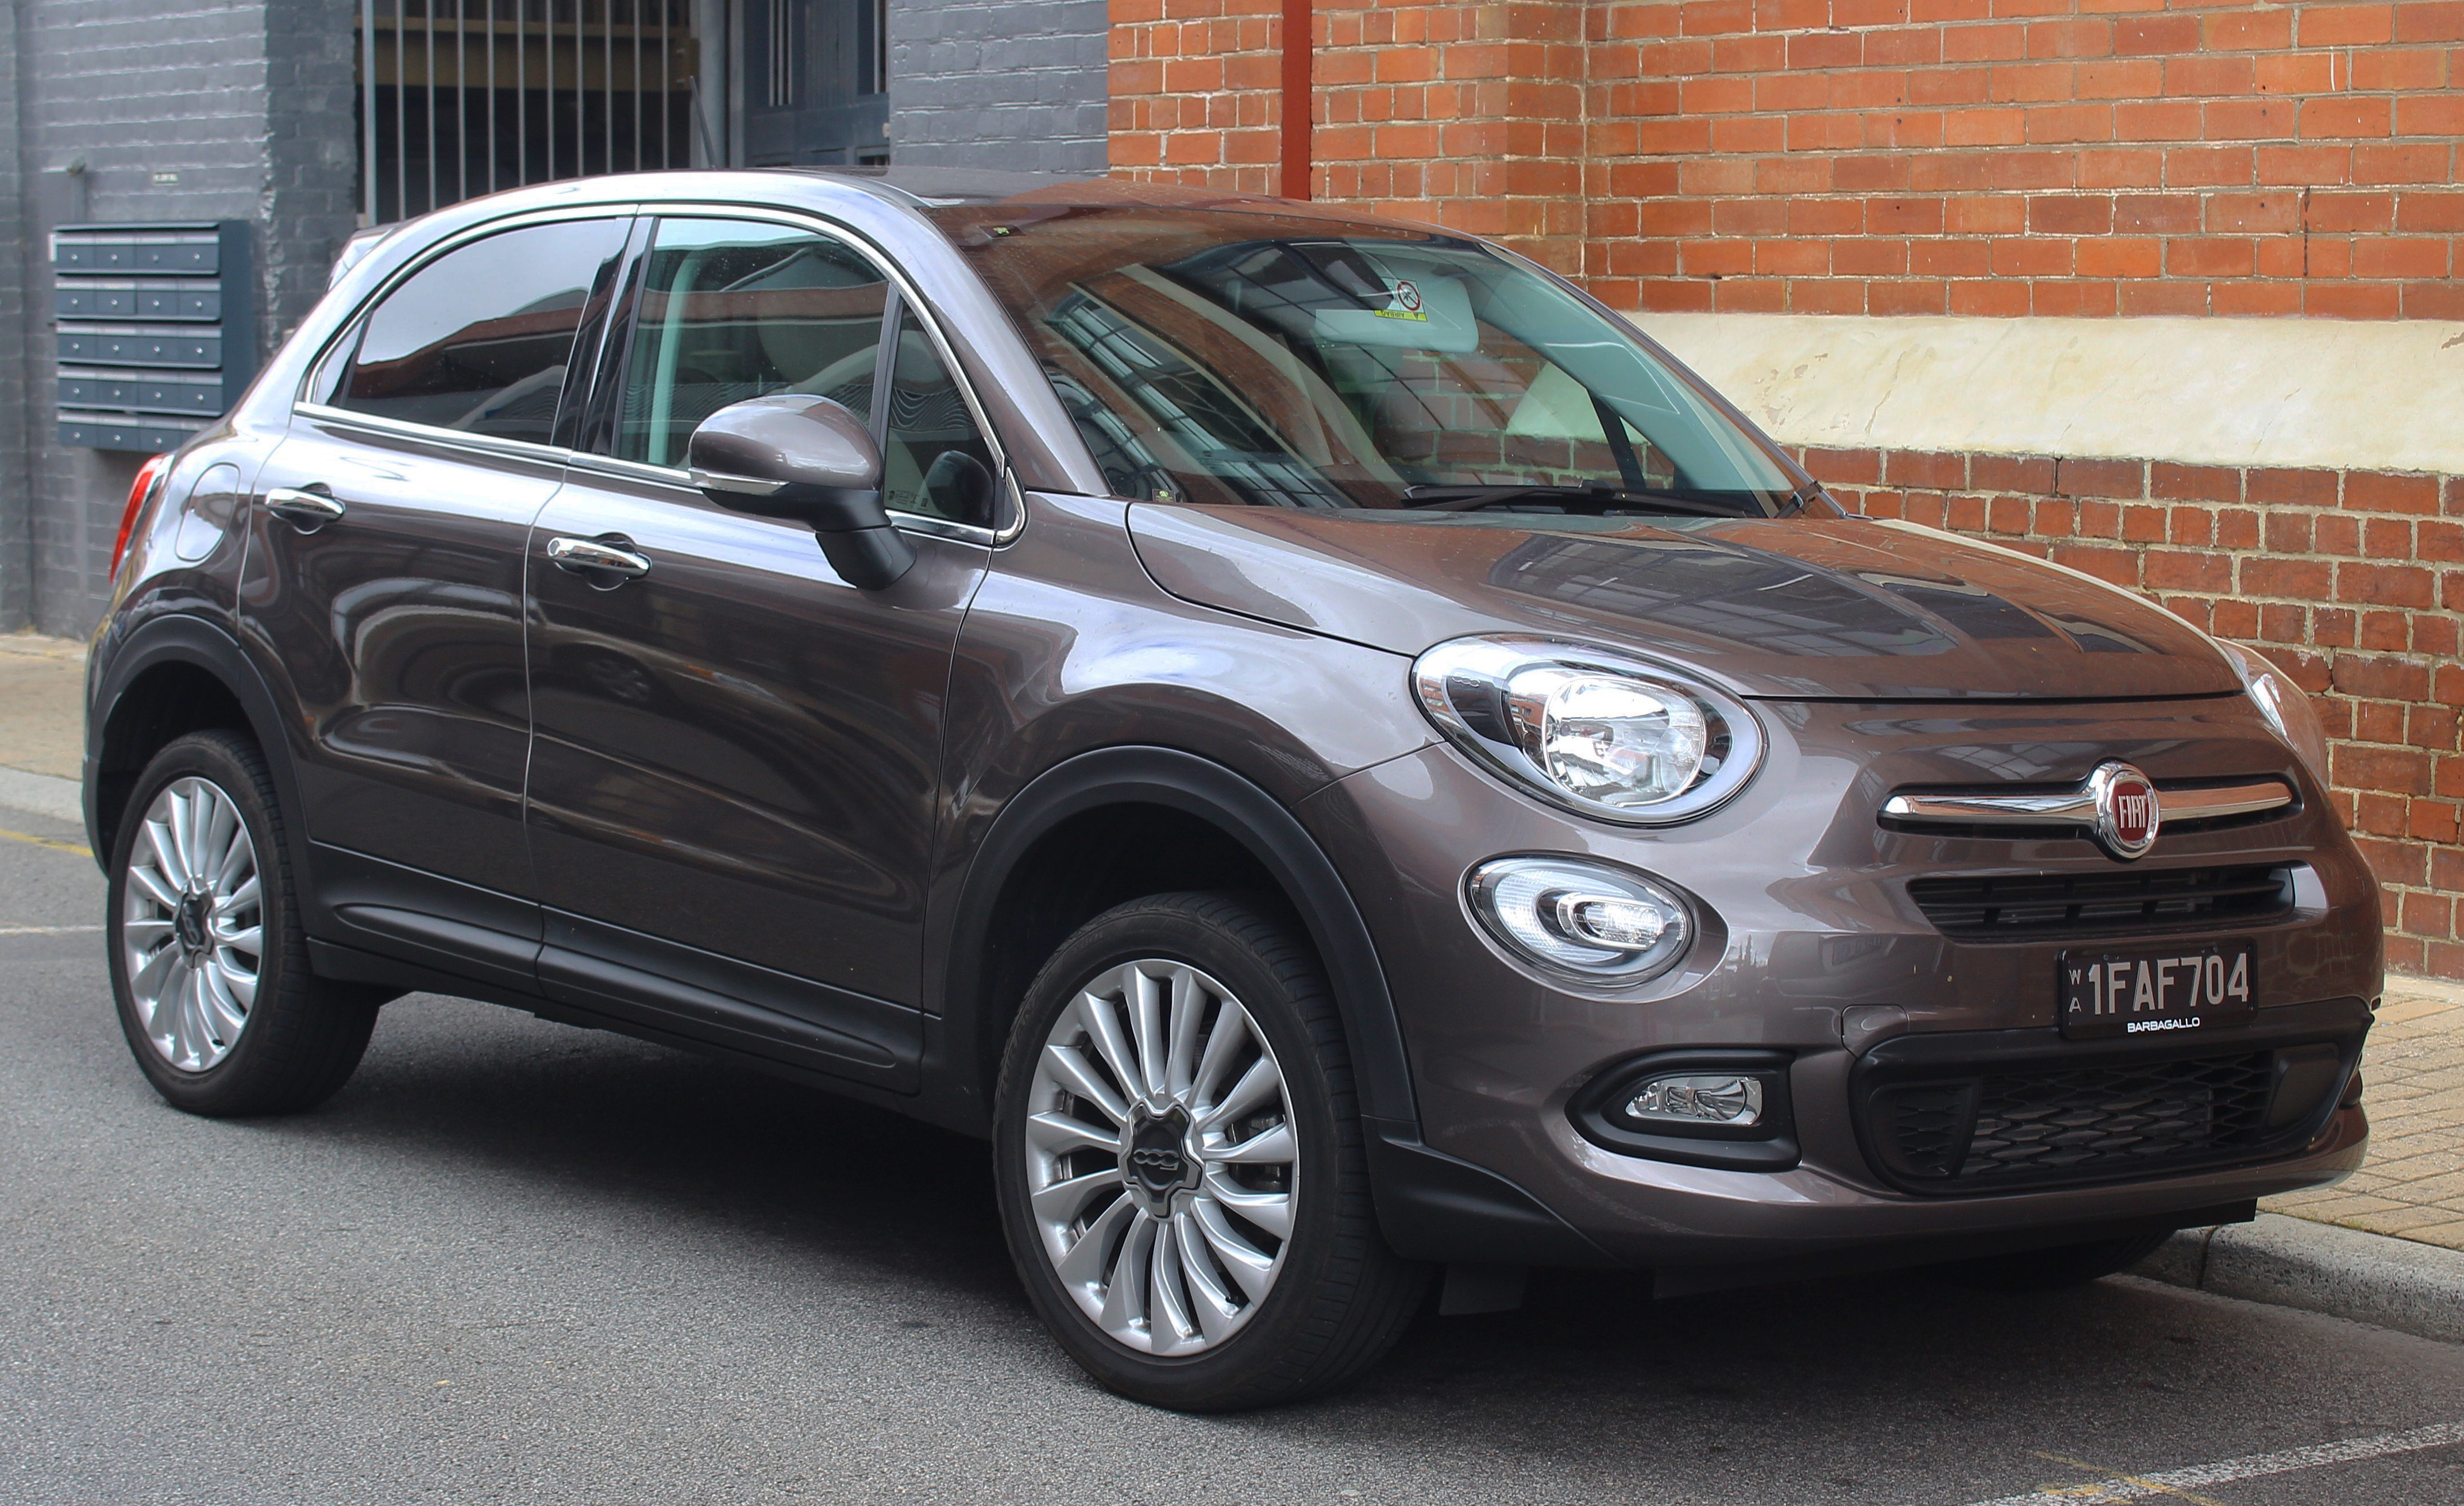 fichier 2016 fiat 500x 334 lounge awd wagon 2018 10 01 wikip dia. Black Bedroom Furniture Sets. Home Design Ideas